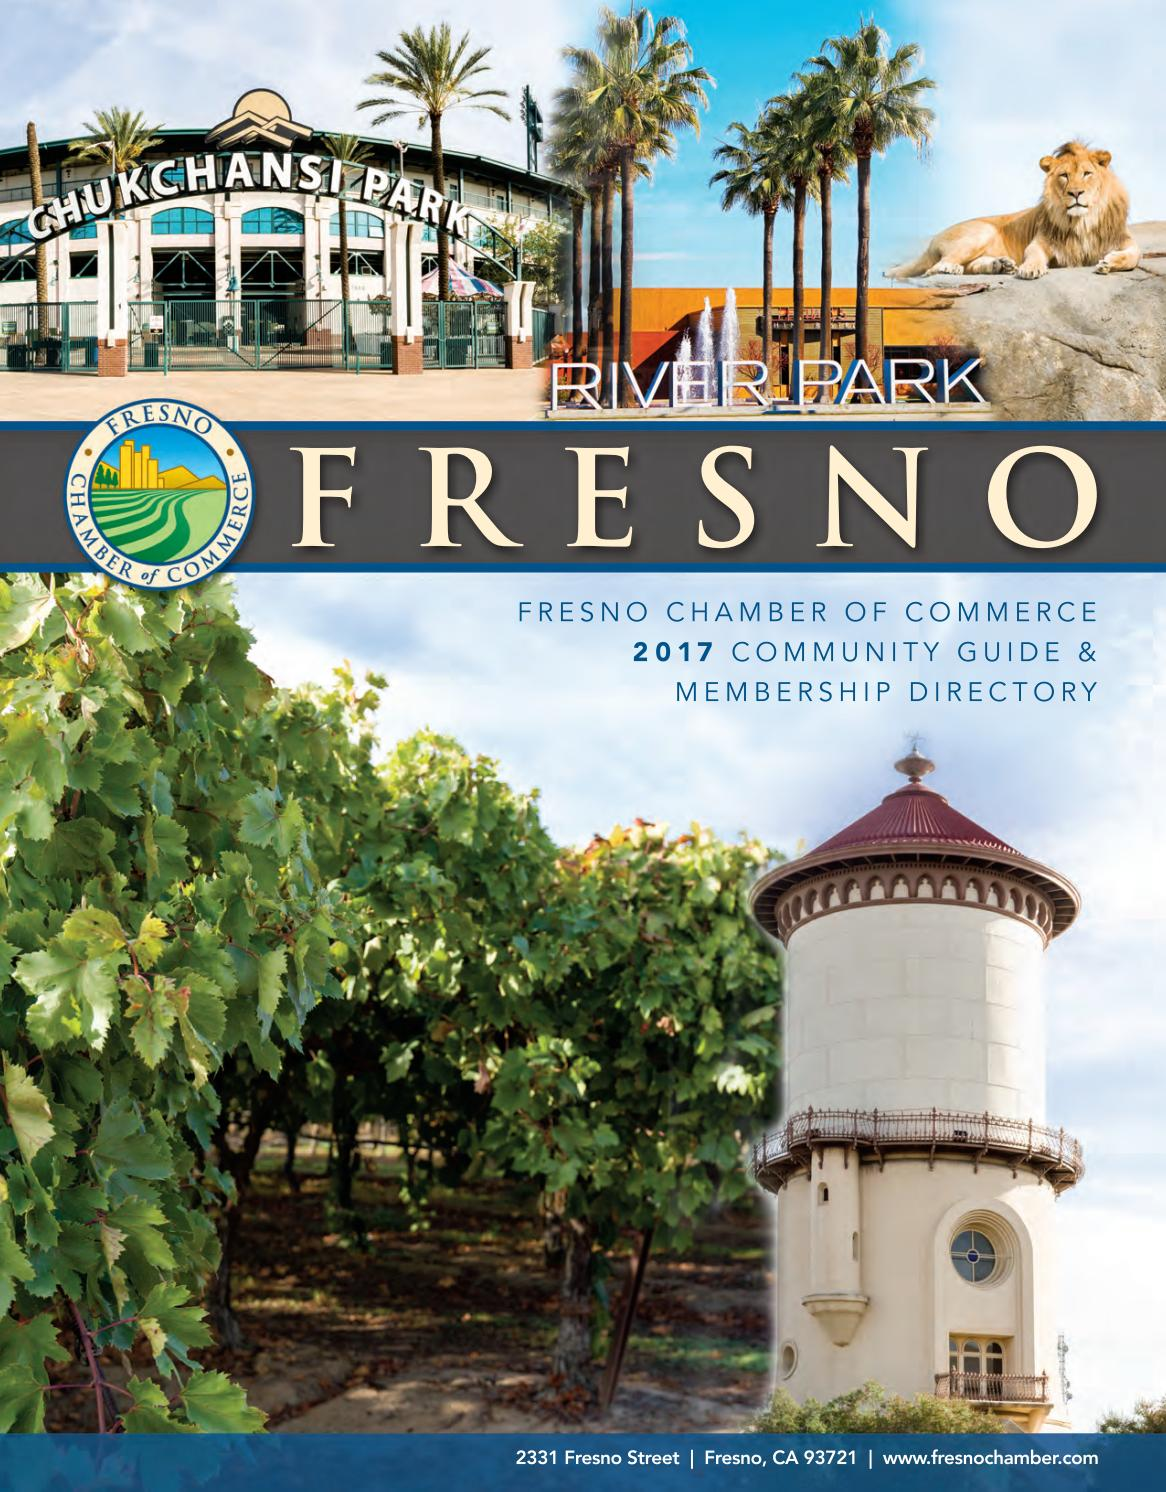 Fresno ca community guide 2017 by town square publications llc fresno ca community guide 2017 by town square publications llc issuu 1betcityfo Images